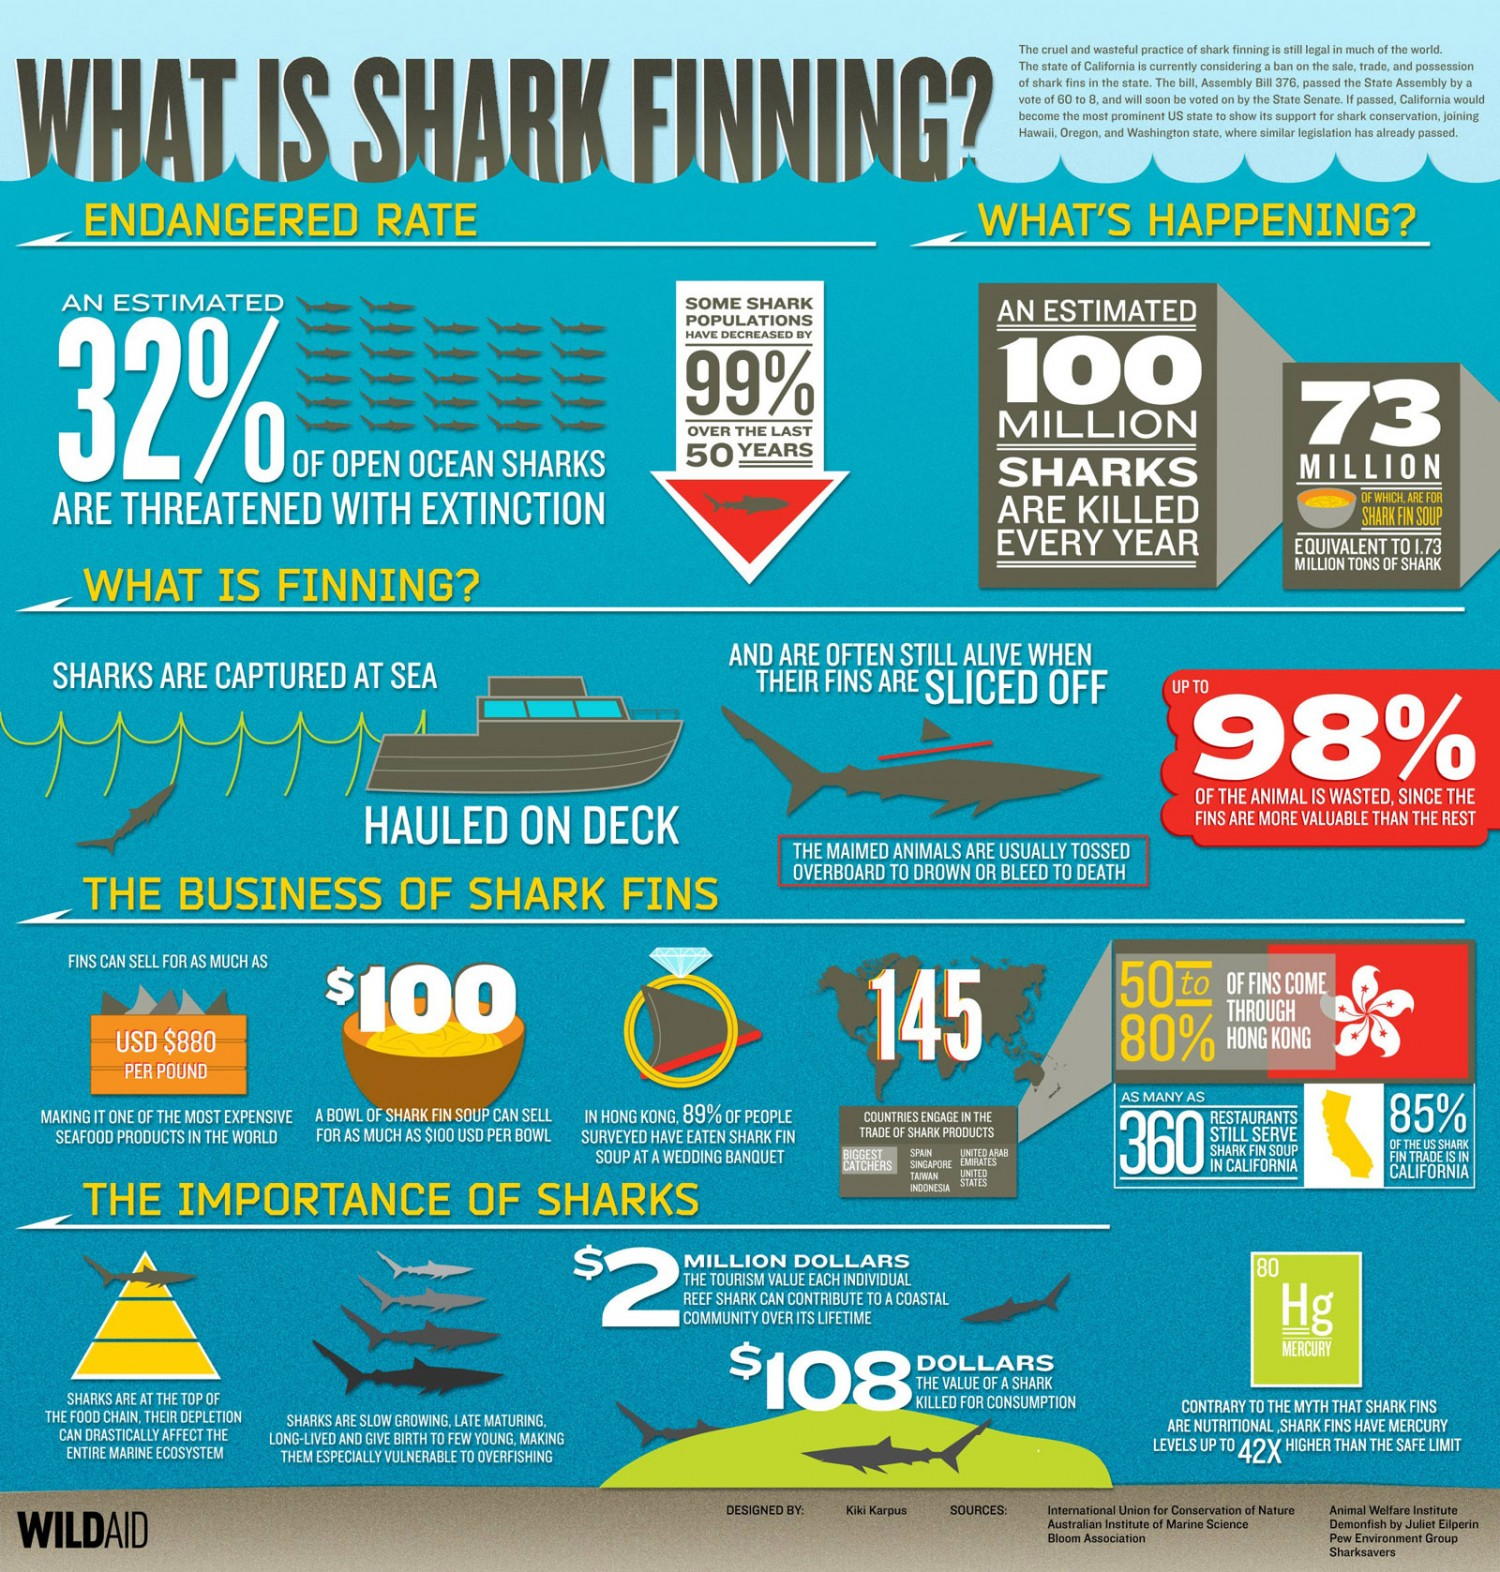 shark-finning_wildaid, visually